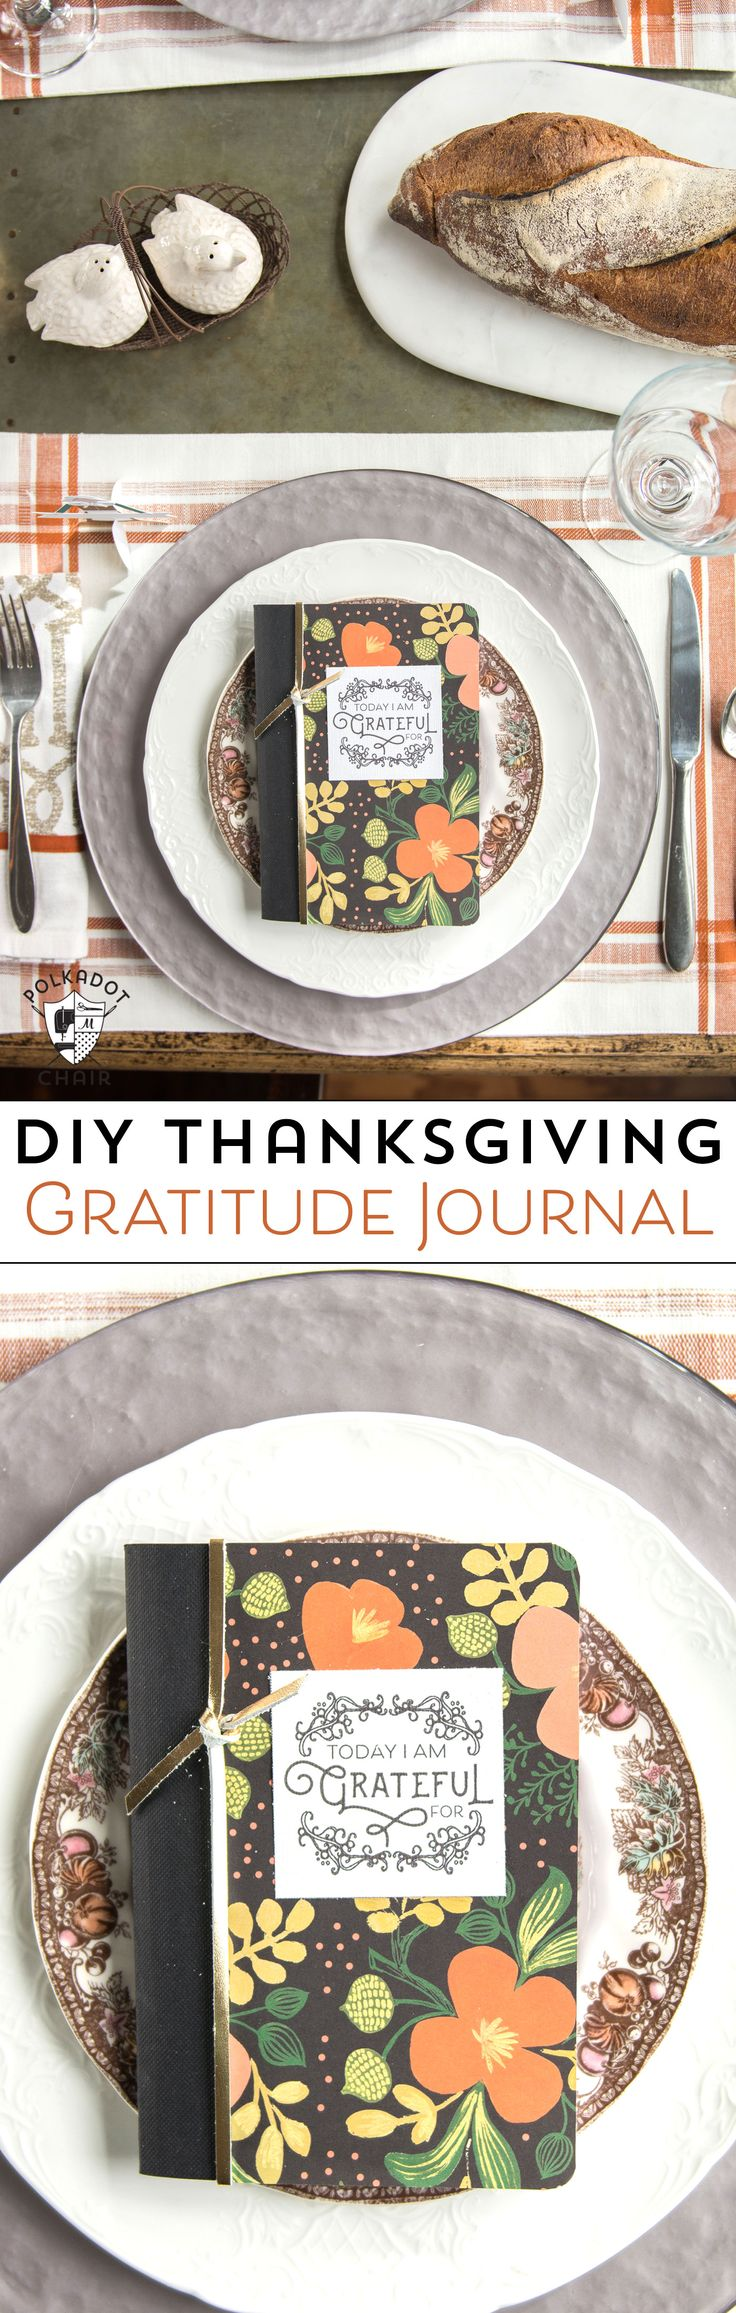 DIY Thanksgiving Gratitude Journal, love the idea of setting them out on the Thanksgiving dinner table (would also be great to use all year long) [ad]